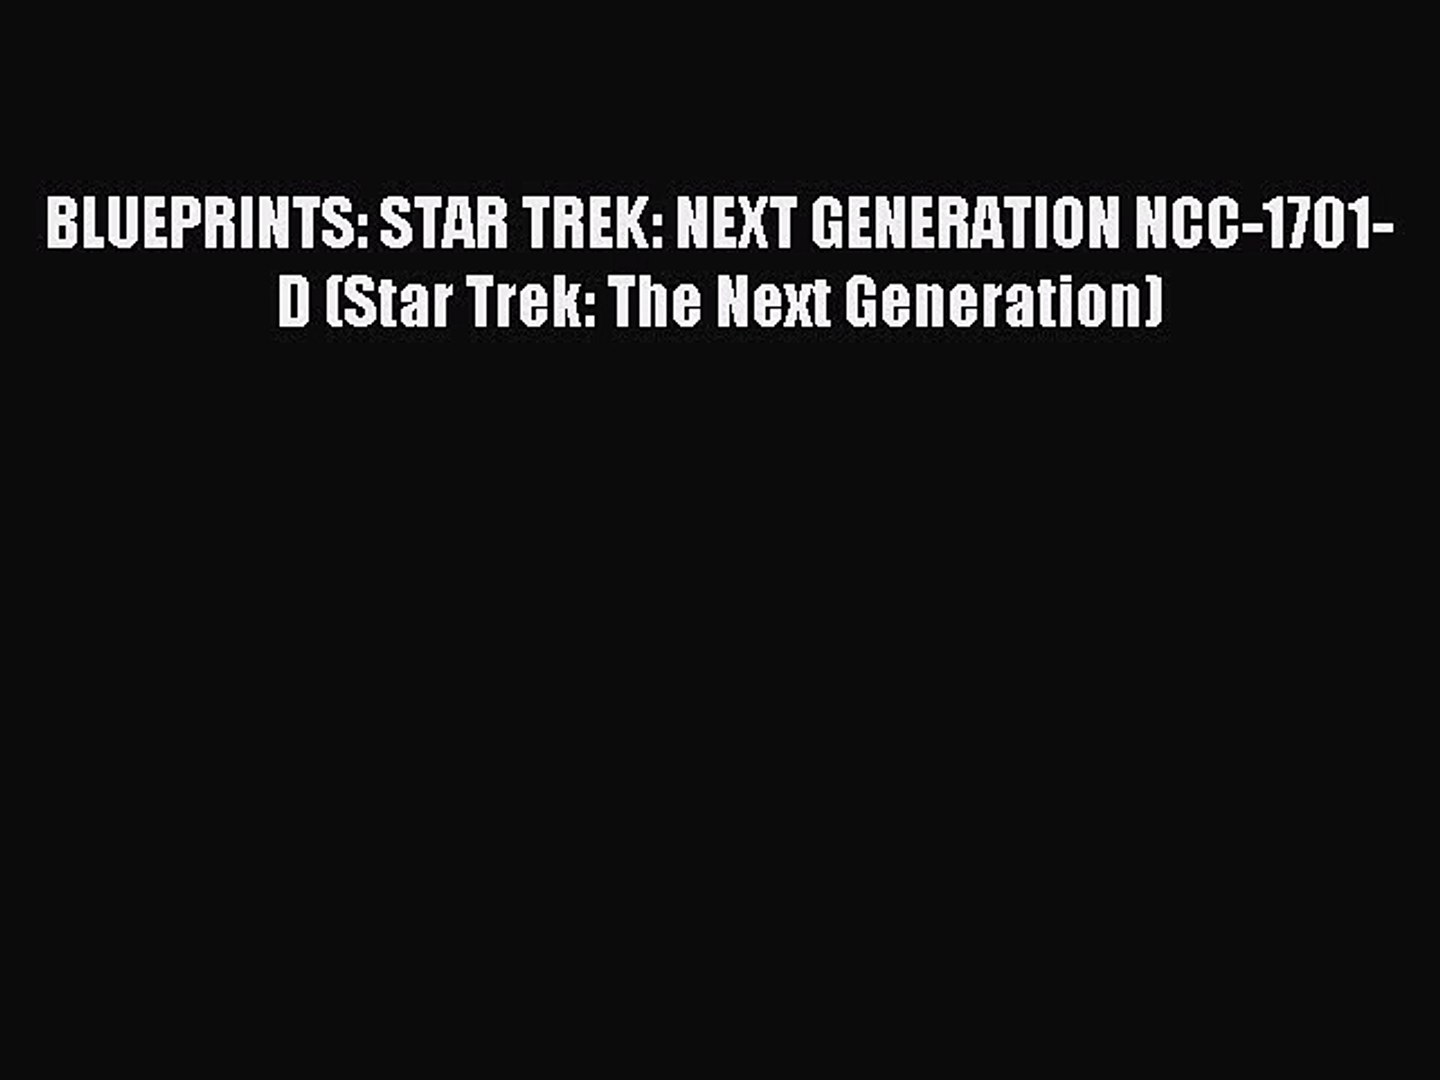 Download BLUEPRINTS: STAR TREK: NCC-1701-D (Star Trek: The ) on